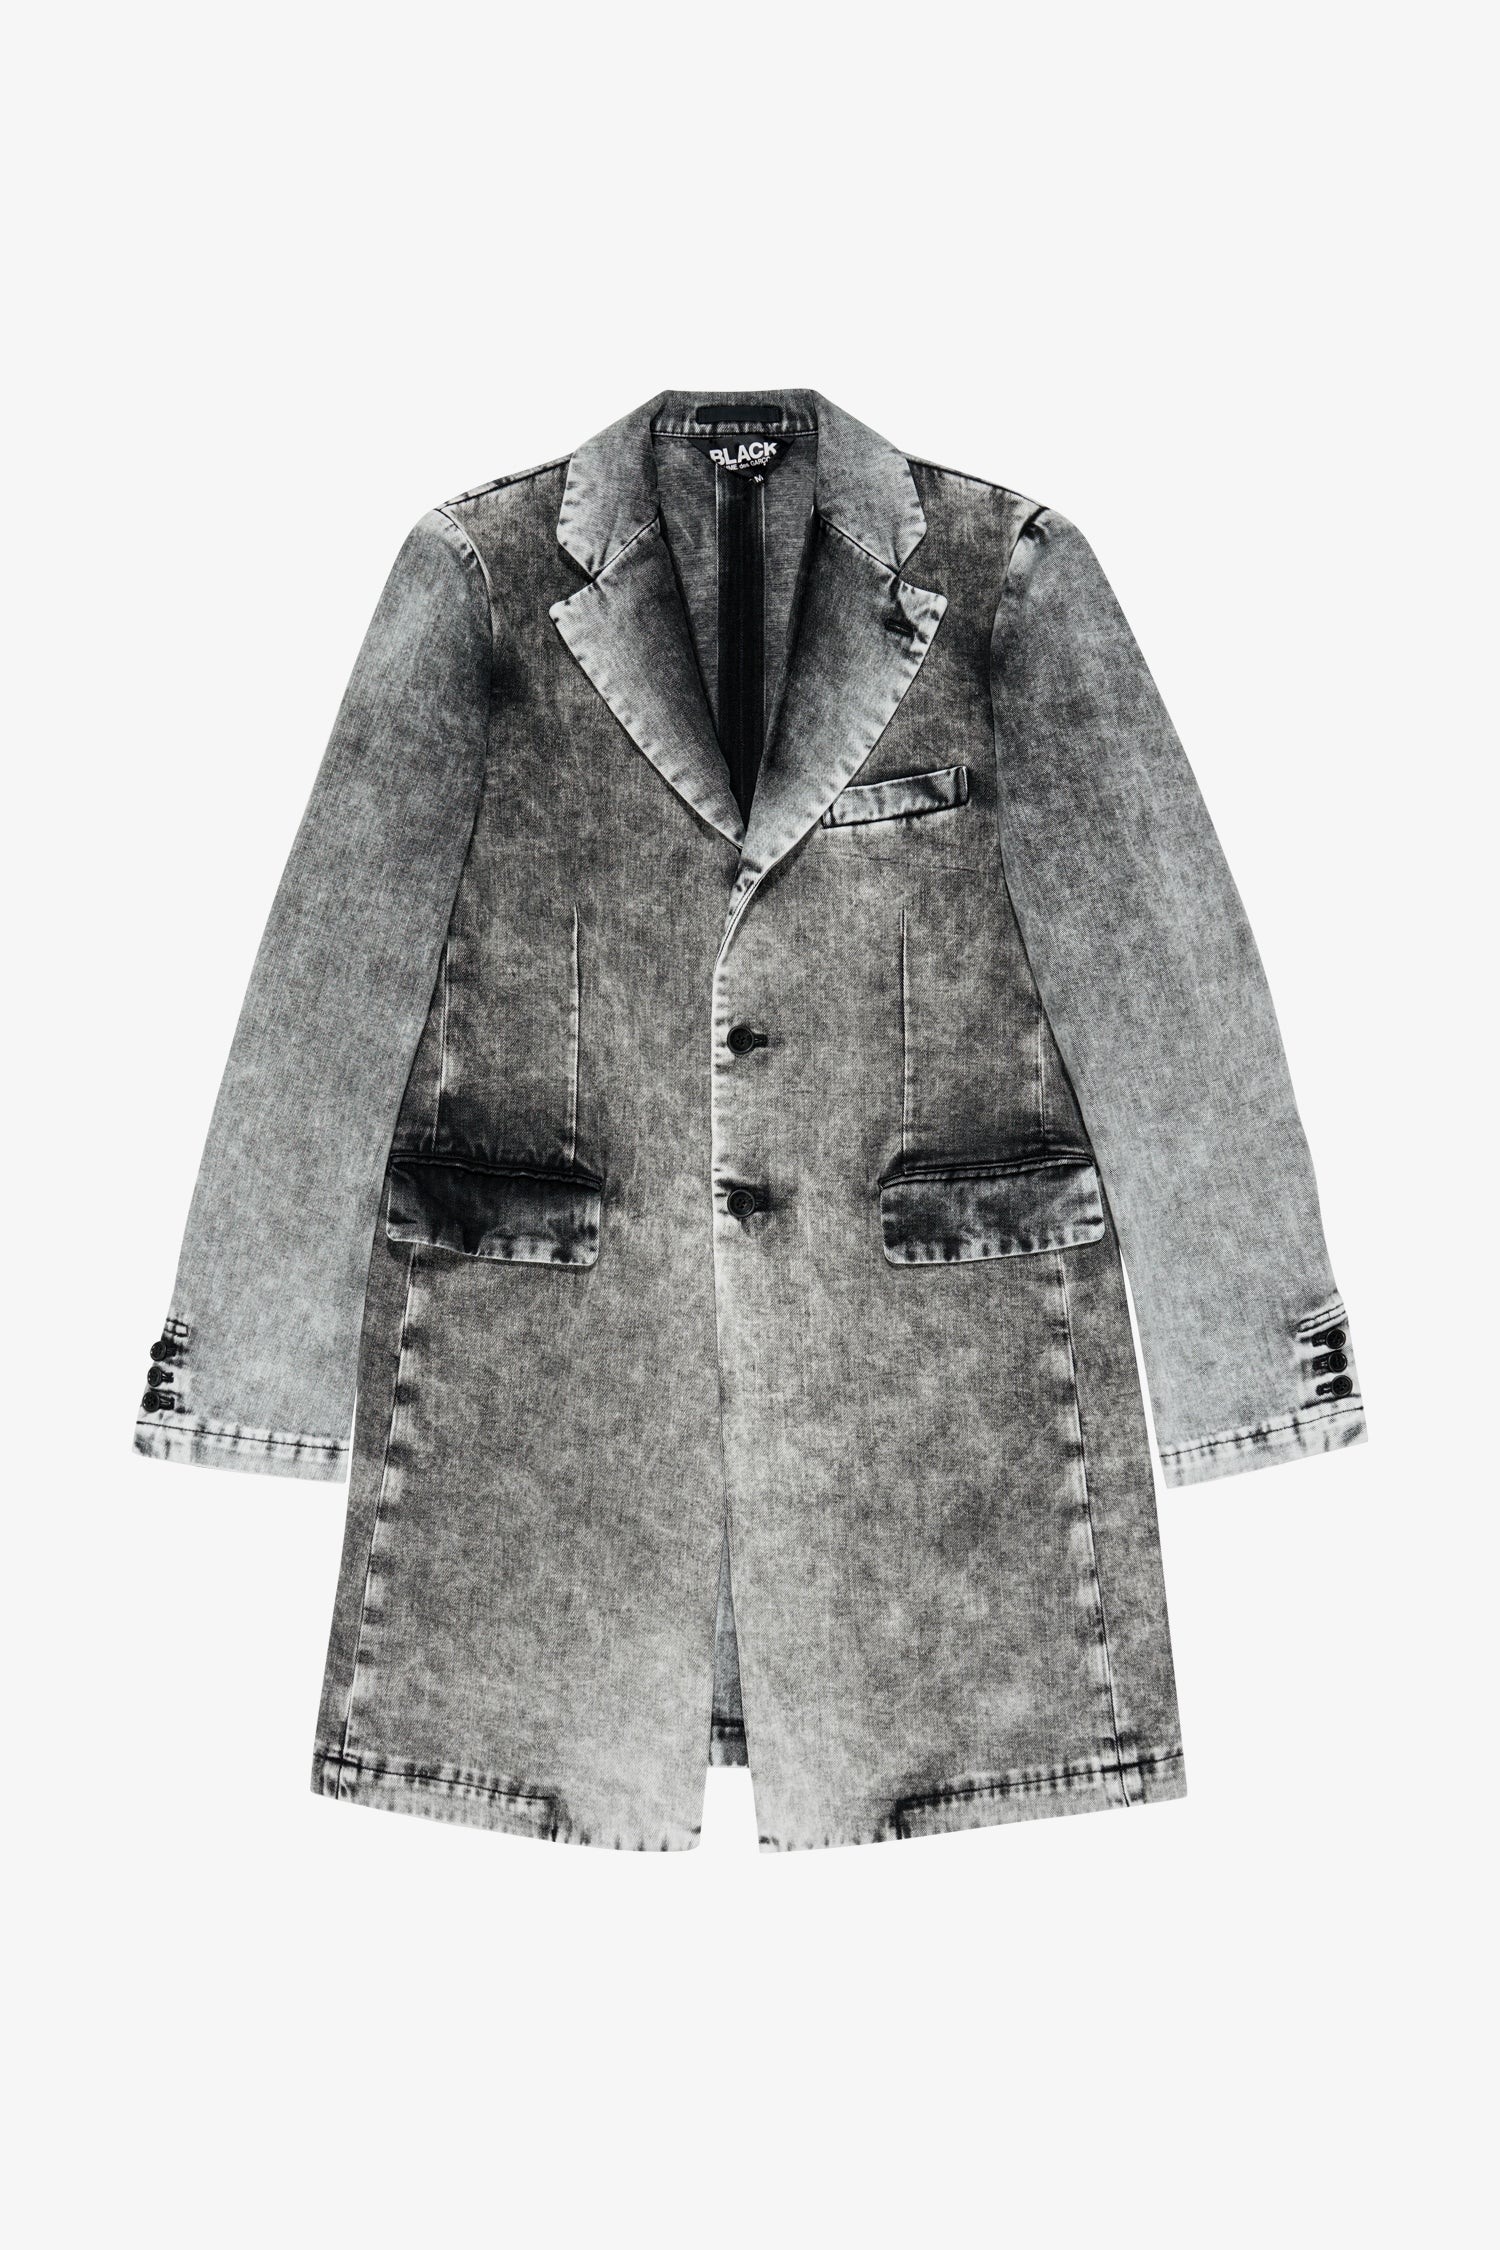 Selectshop FRAME - COMME DES GARCONS BLACK Faded Denim Coat Outerwear Dubai